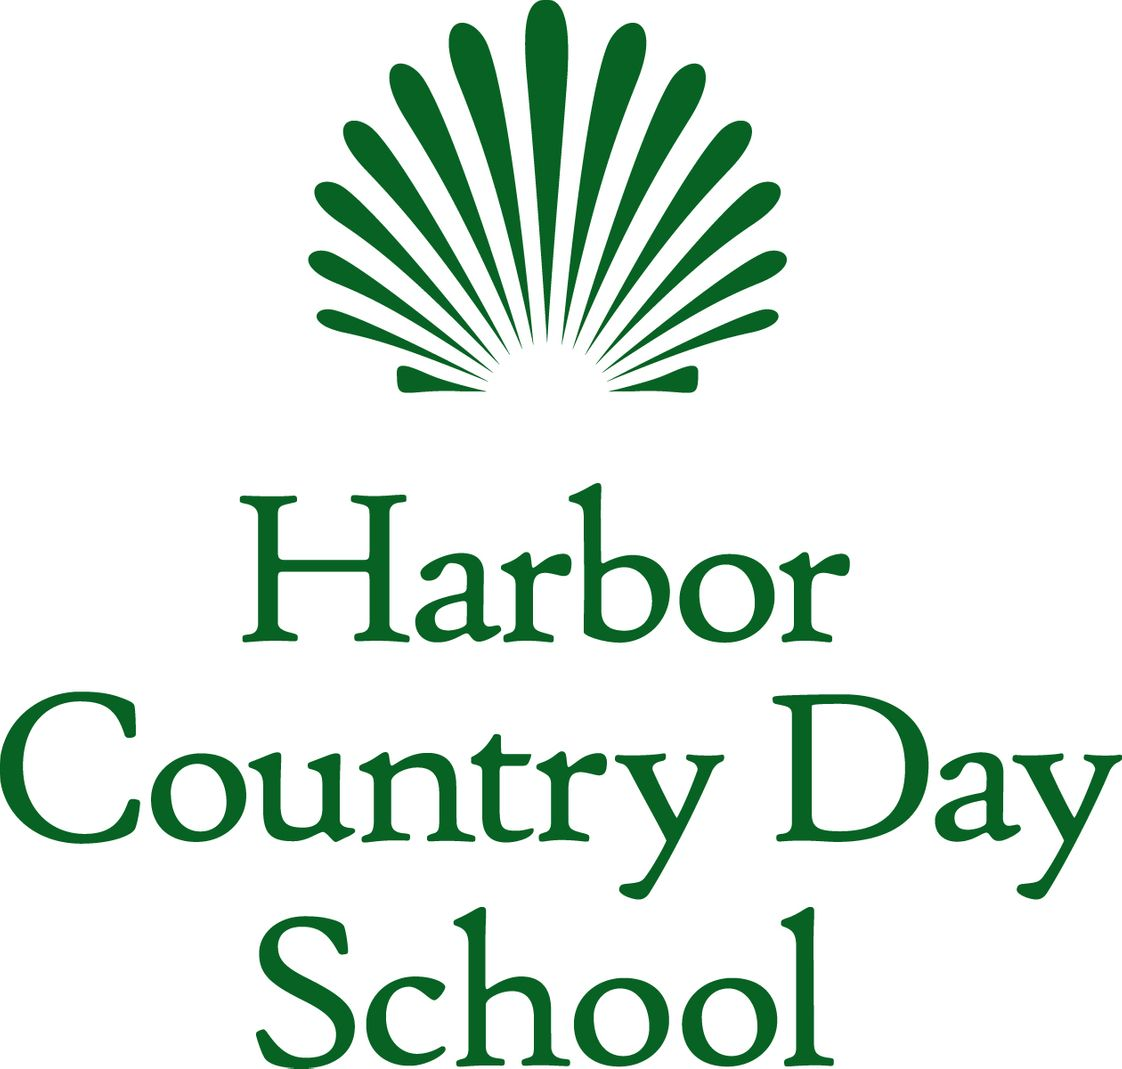 Harbor Country Day School Photo #1 - Harbor cherishes childhood, cultivates wonder and inspires confident learners and leaders.